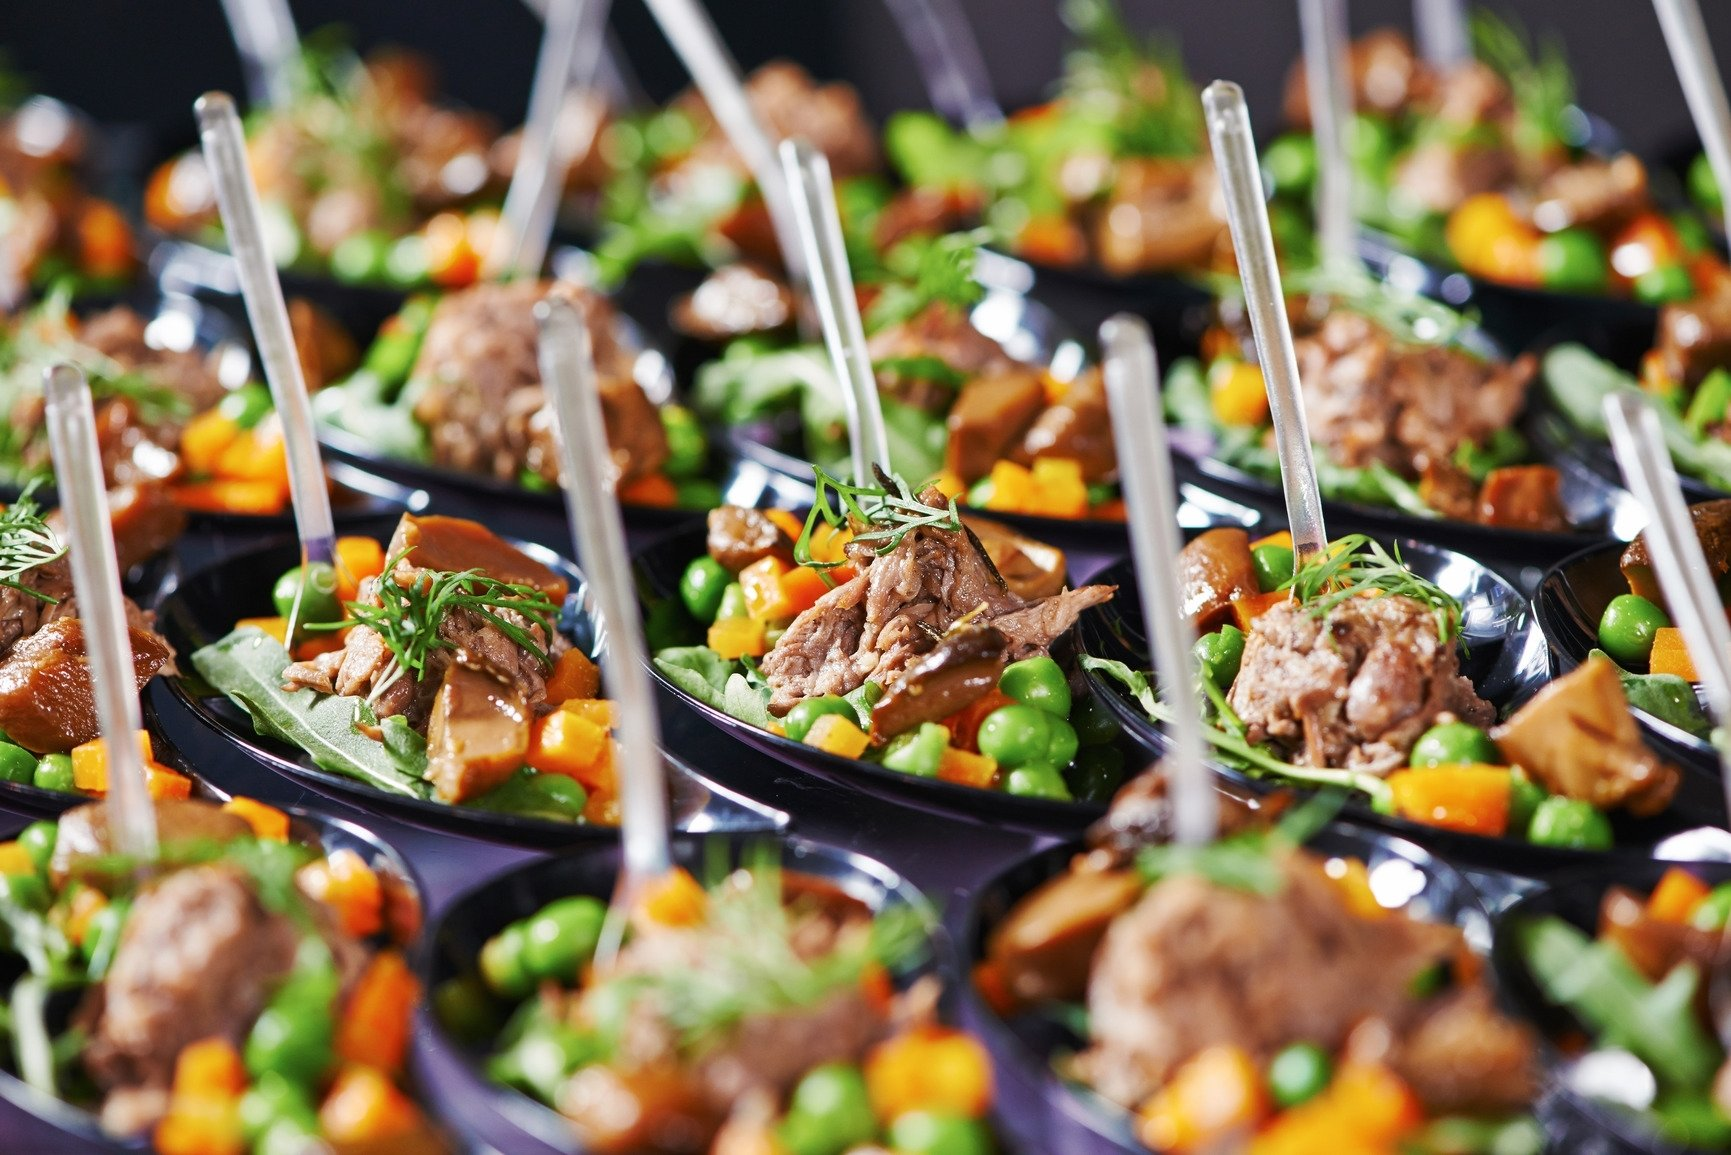 10 Most Popular Food Ideas For Large Parties 90 food ideas for large groups the 25 best large group meals 2021